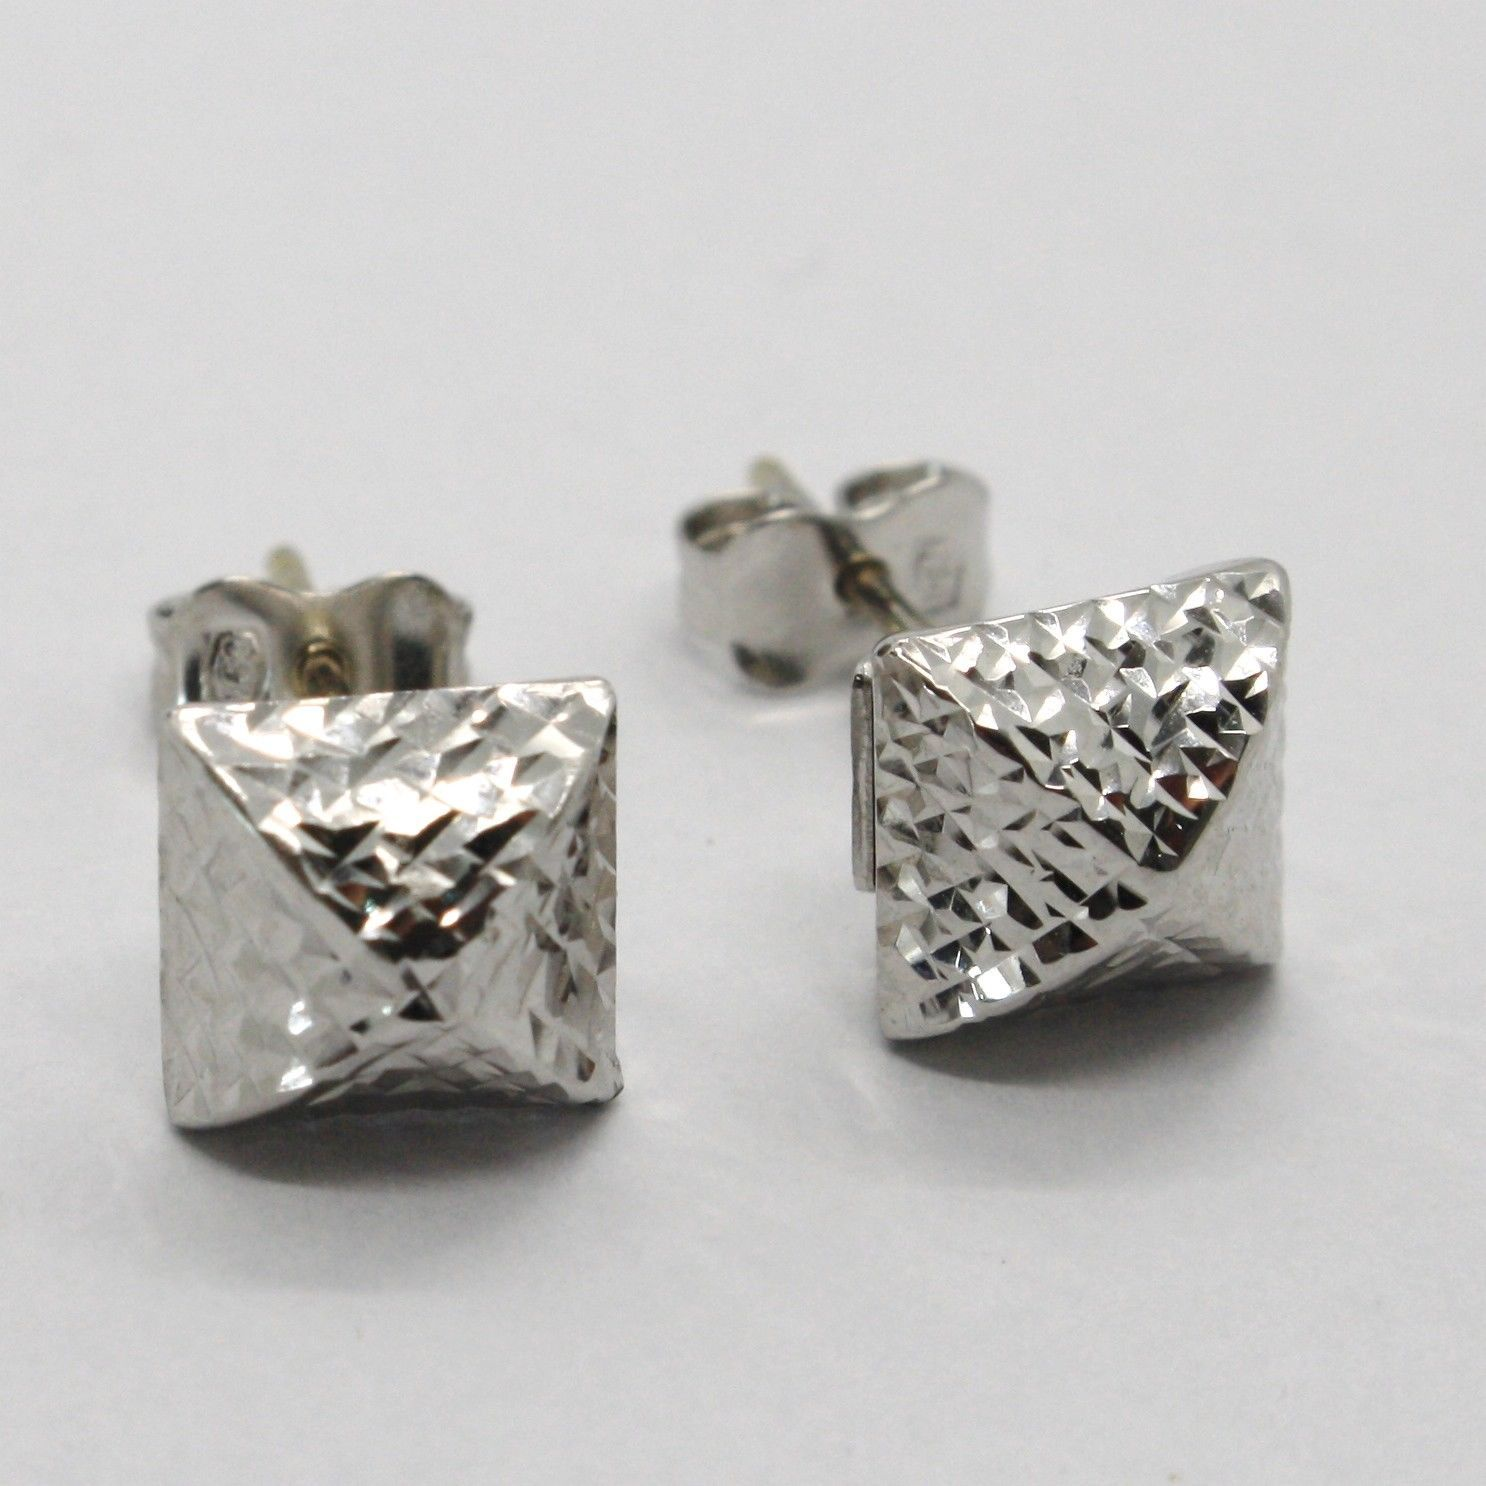 18K WHITE GOLD SQUARE EARRINGS FINELY WORKED, ROUNDED, BRIGHT, MADE IN ITALY